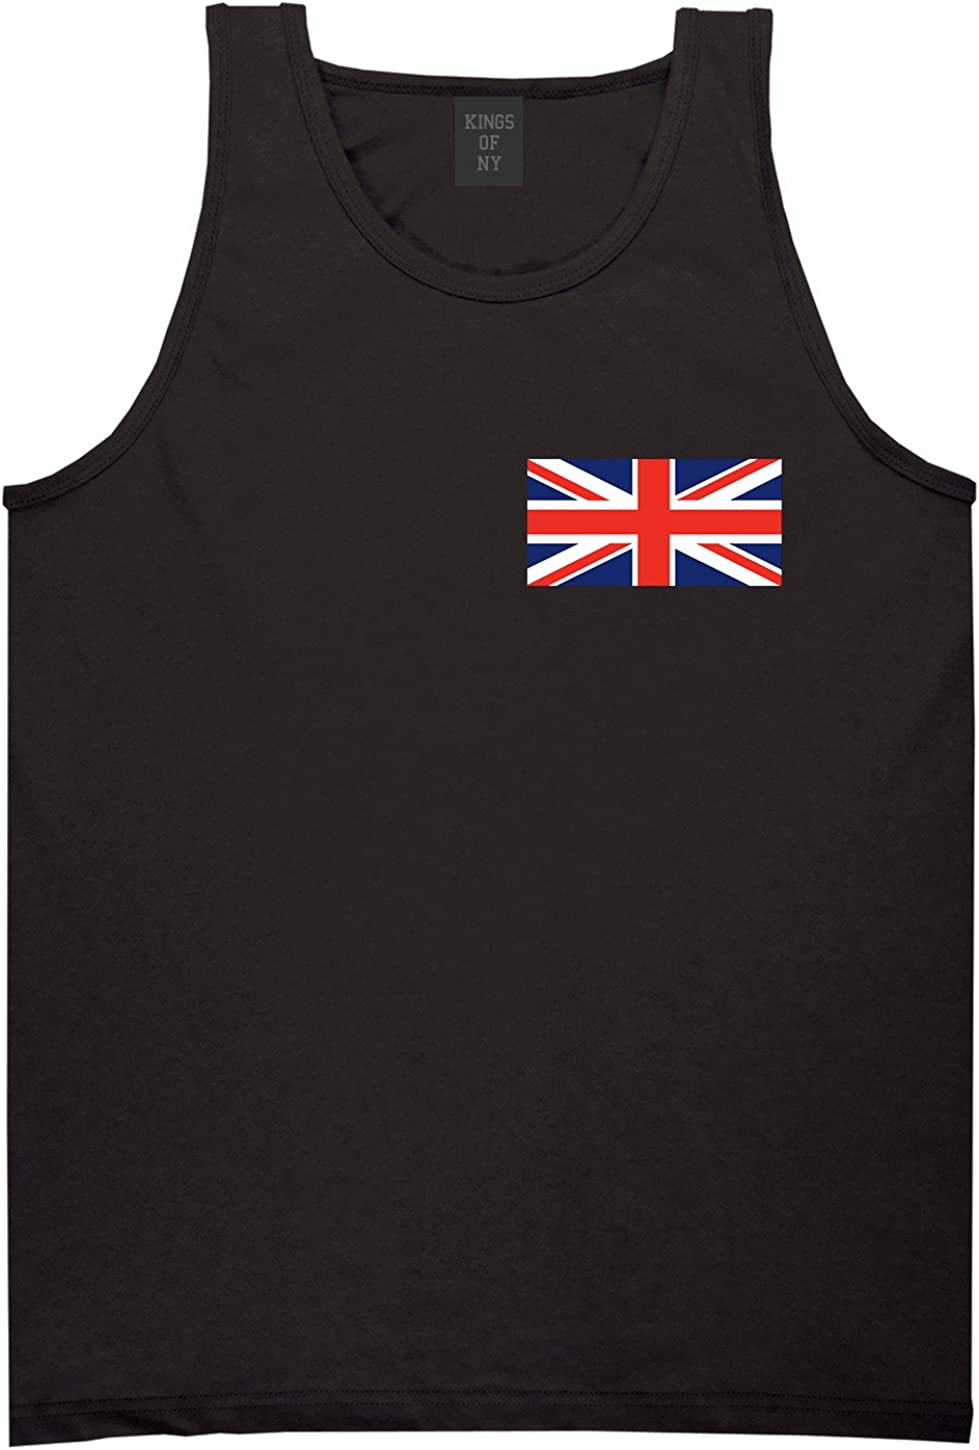 United Kingdom Flag Country Chest Tank Top Shirt